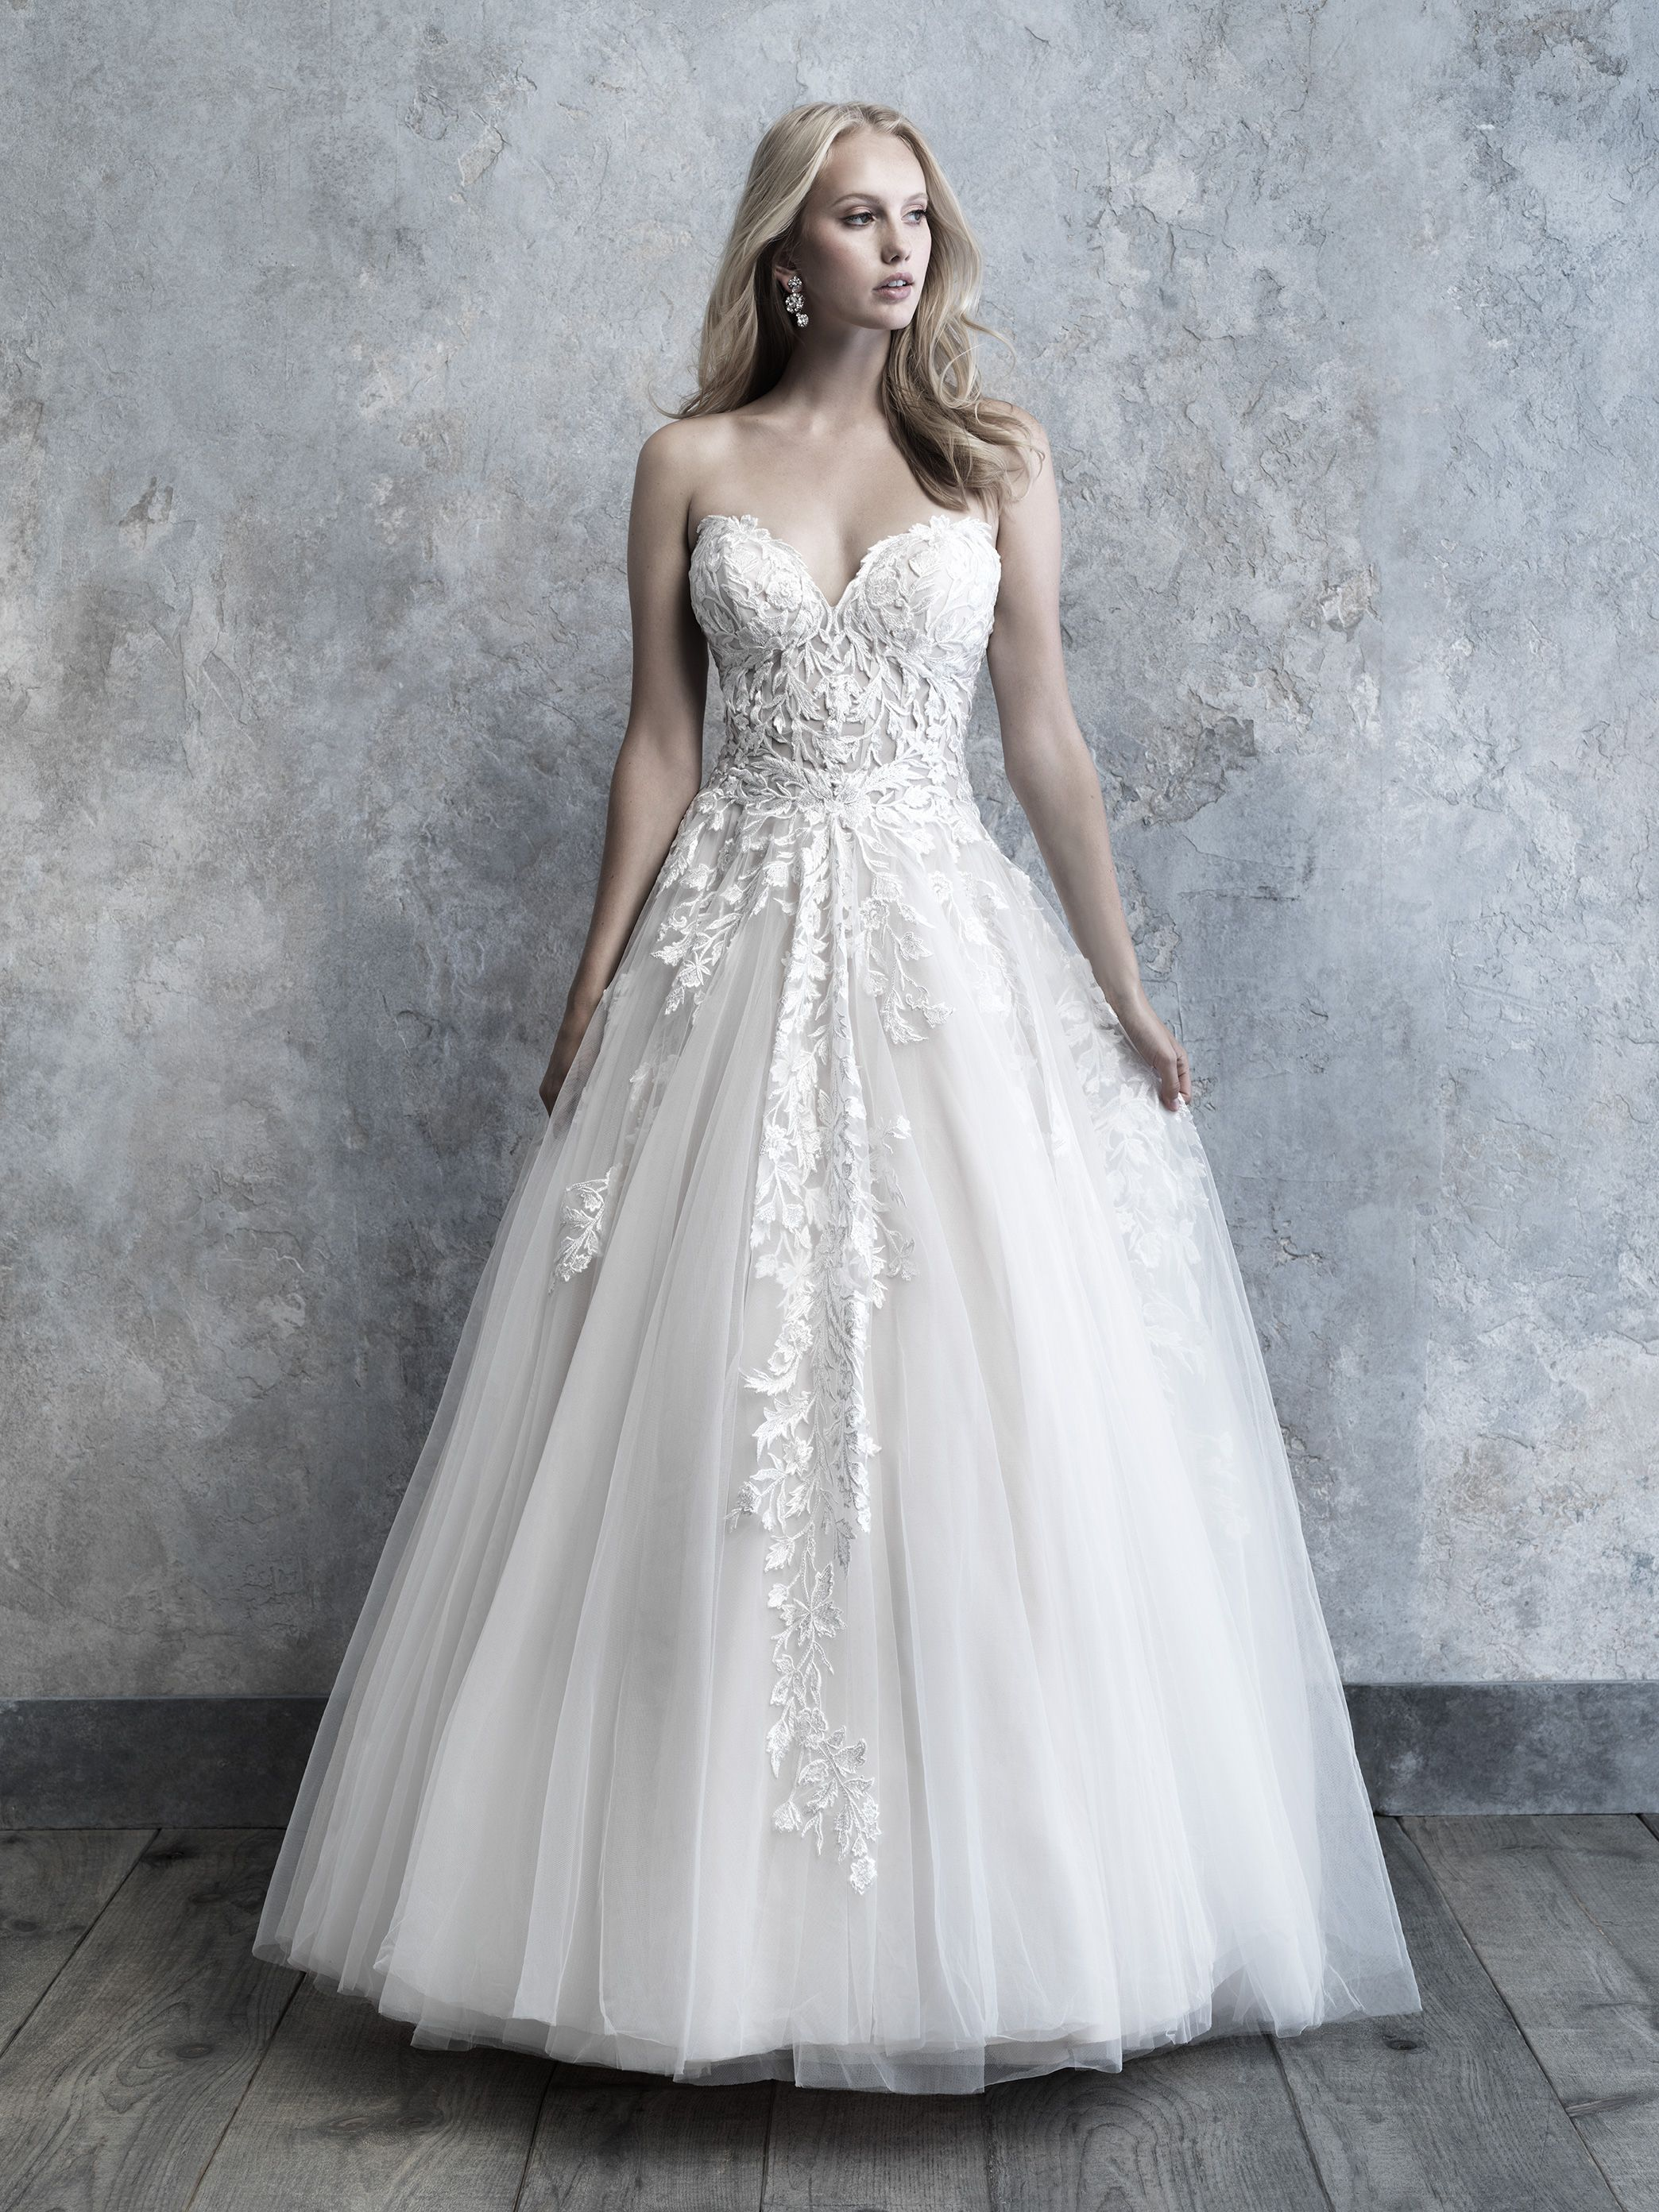 This Gorgeous Madison James Ballgown Is Now Available At Arlet Bridal Laceballgown Laceweddingdresses Ballgownweddin Ball Gowns Allure Bridal Tulle Ball Gown,50th Anniversary Golden Wedding Anniversary Dresses